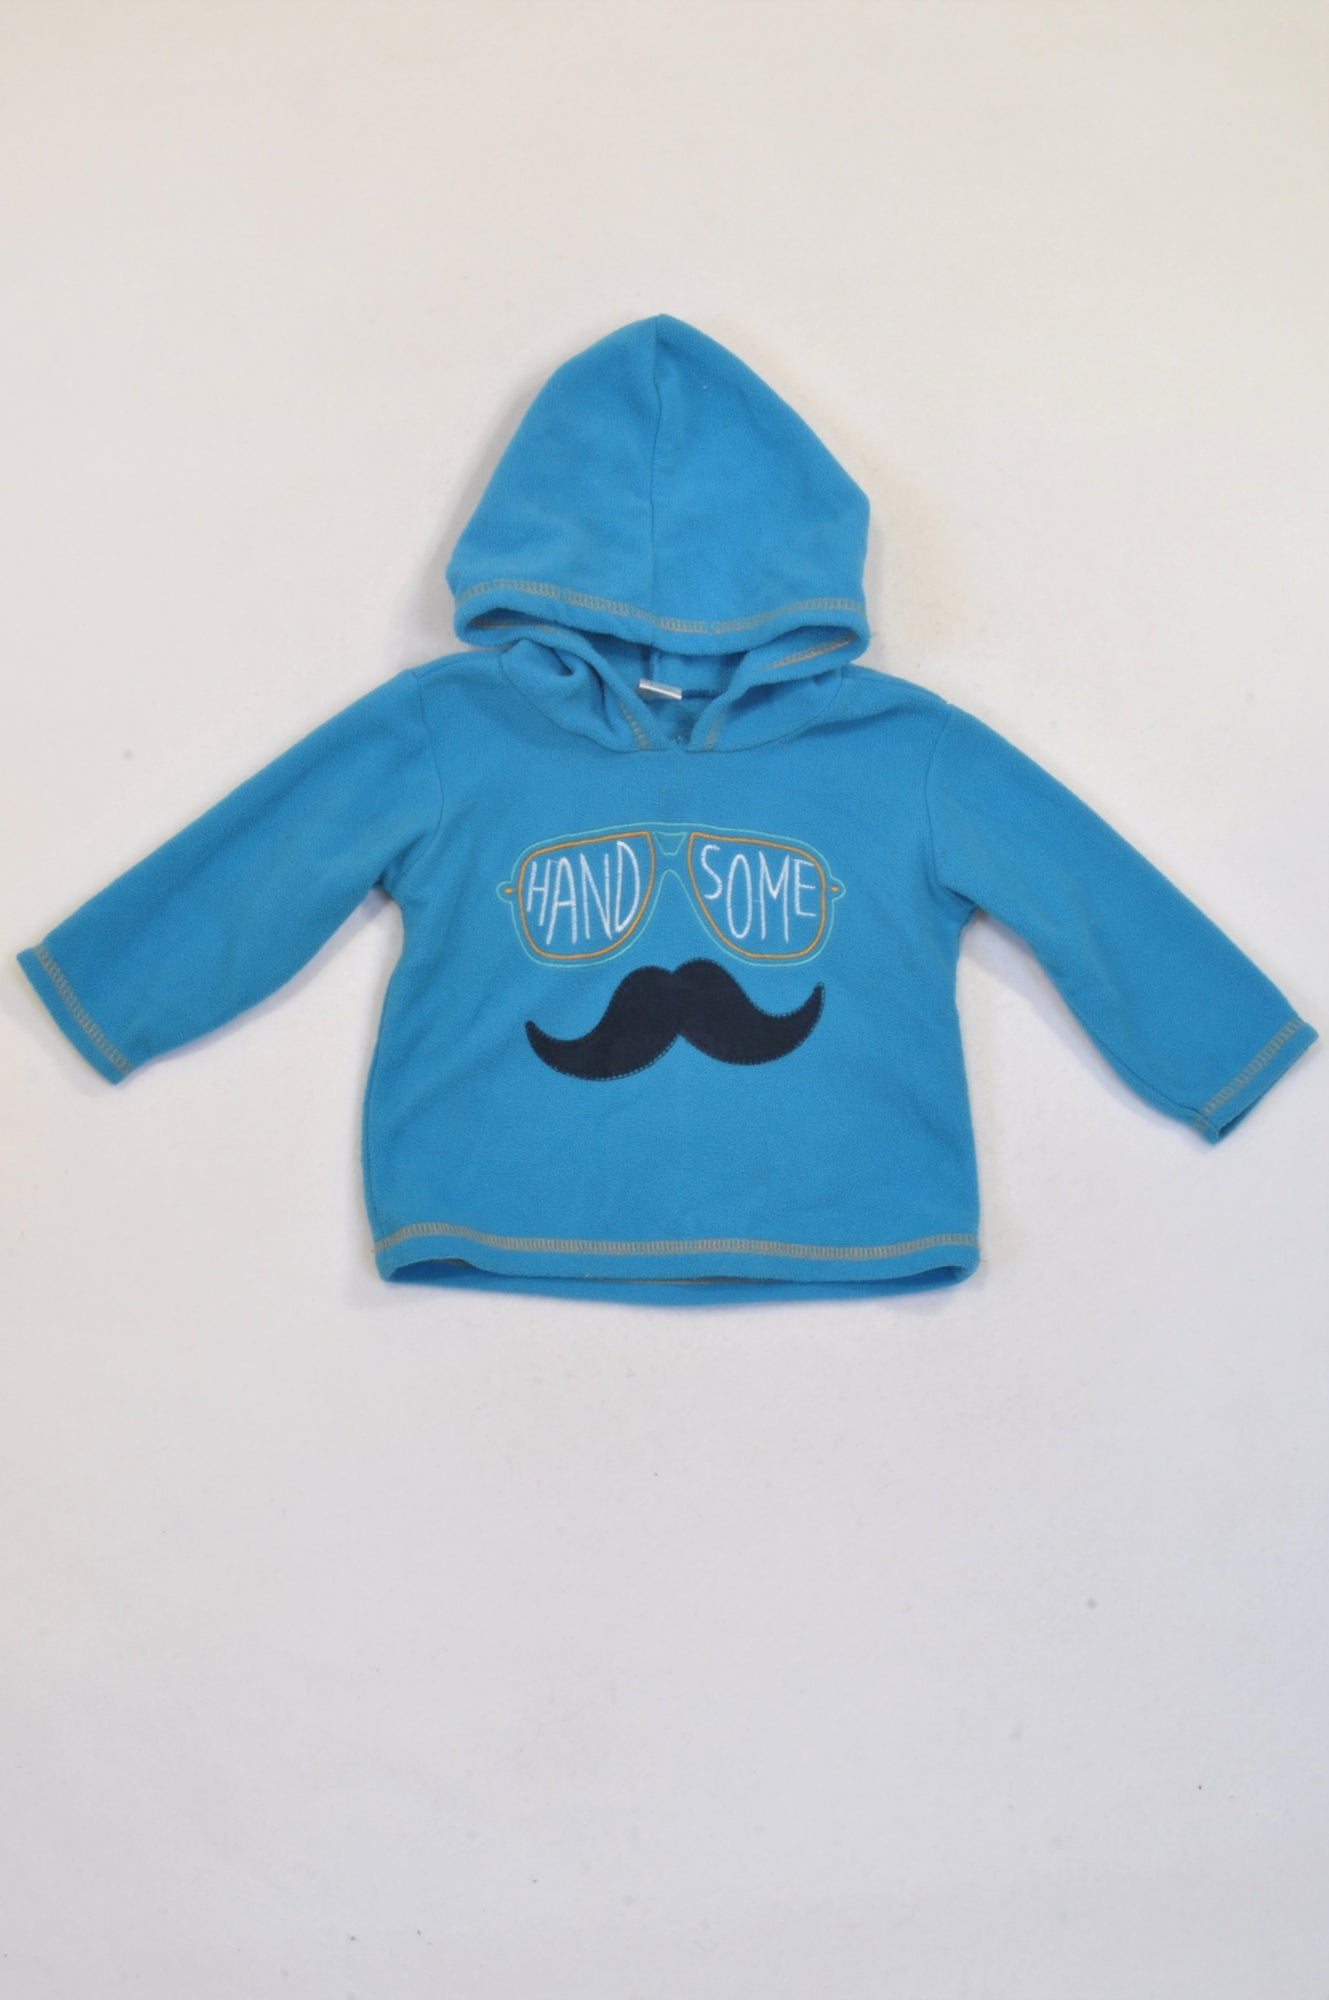 Ackermans Blue Fleece Handsome Hoodie Boys 3-6 months